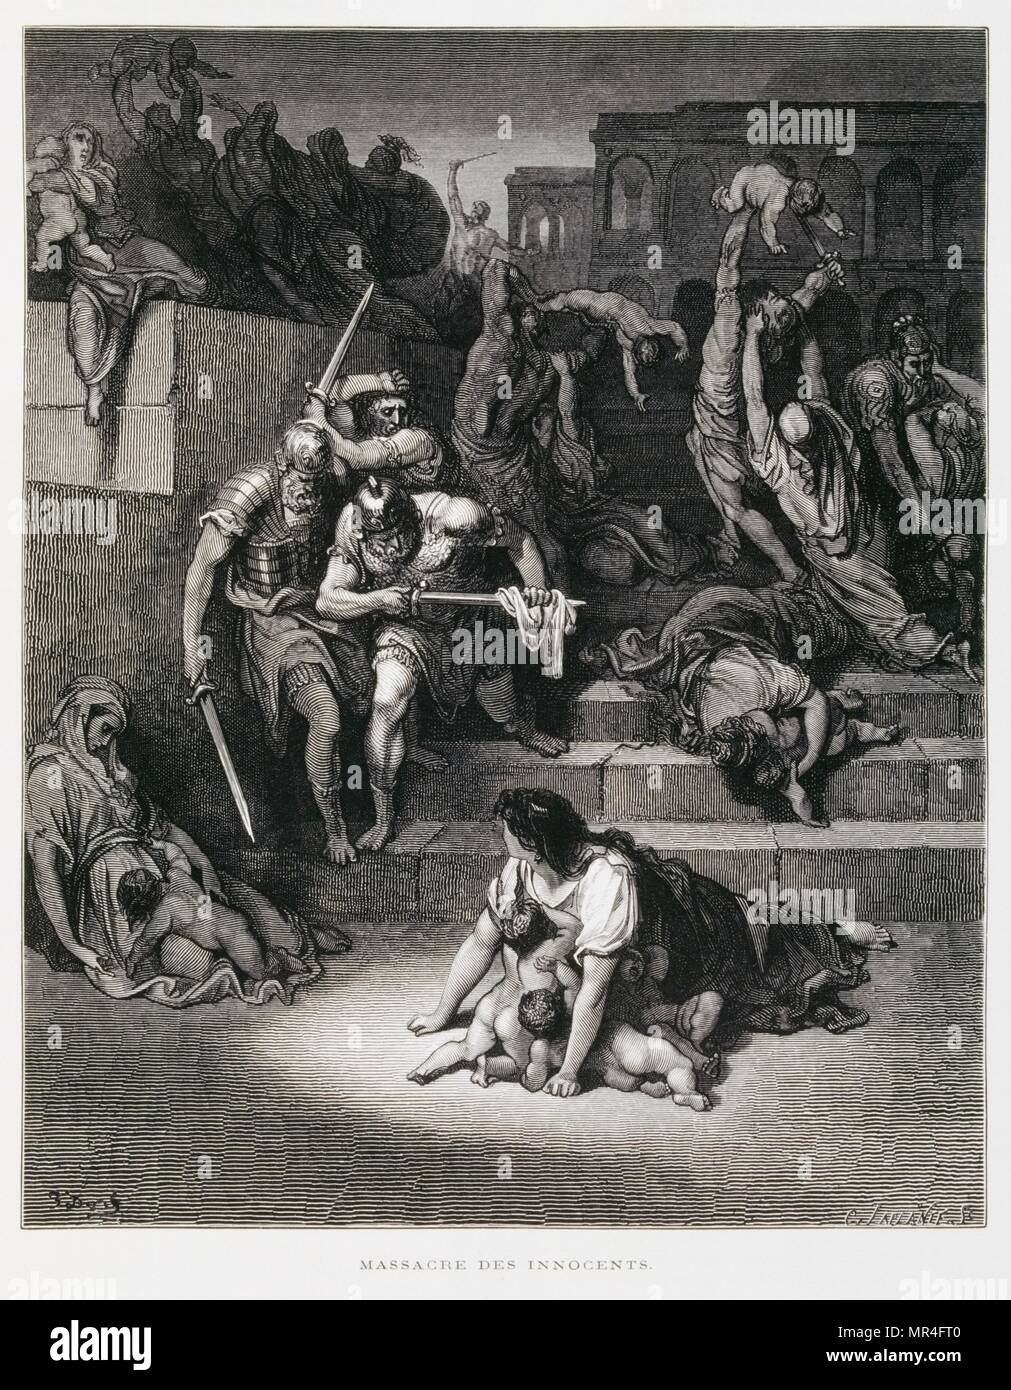 King Herod orders the Massacre of the innocents, Illustration from the Dore Bible 1866. In 1866, the French artist and illustrator Gustave Doré (1832–1883), published a series of 241 wood engravings for a new deluxe edition of the 1843 French translation of the Vulgate Bible, popularly known as the Bible de Tours. This new edition was known as La Grande Bible de Tours and its illustrations were immensely successful. Stock Photo